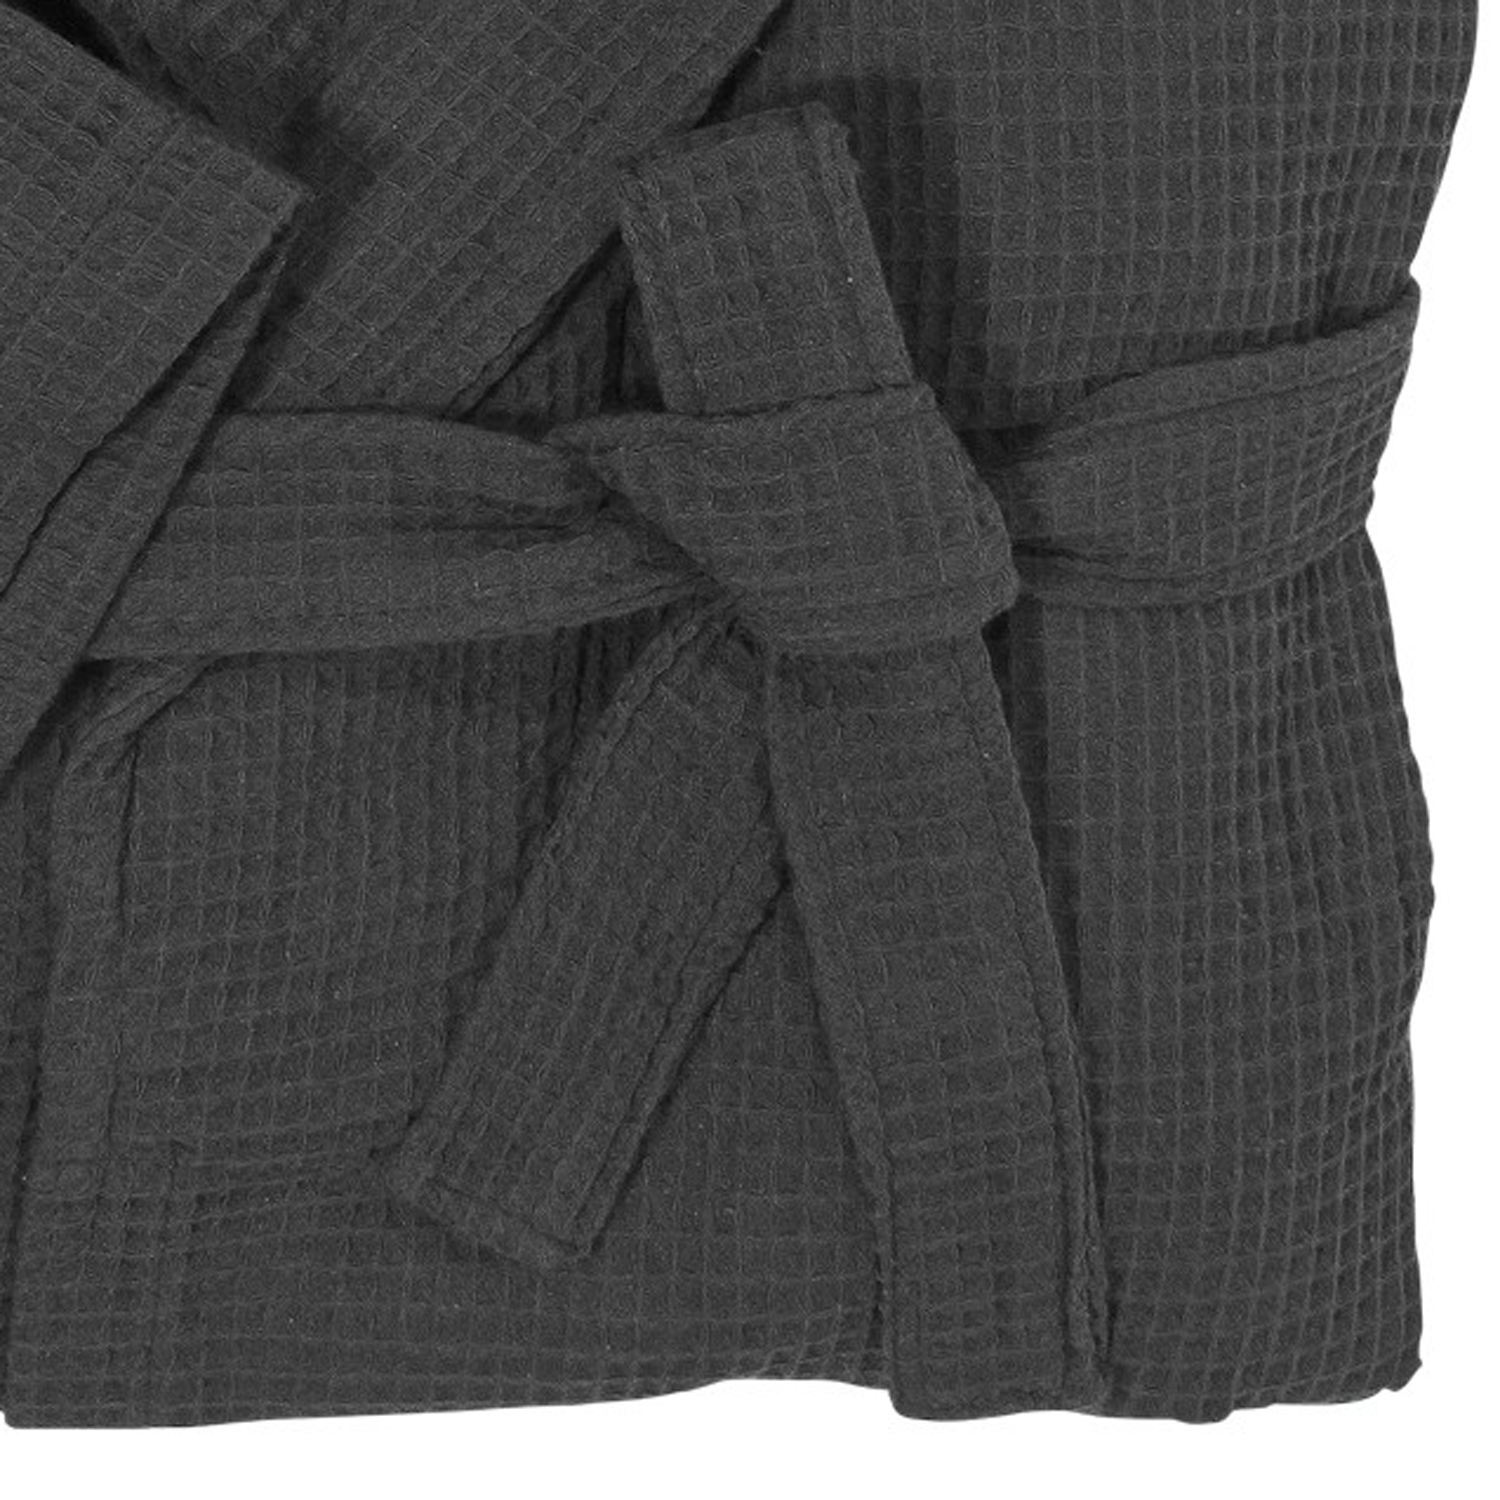 Detail Image to Black dressing gown made of waffle pique by Abraxas in large Sizes up to10XL